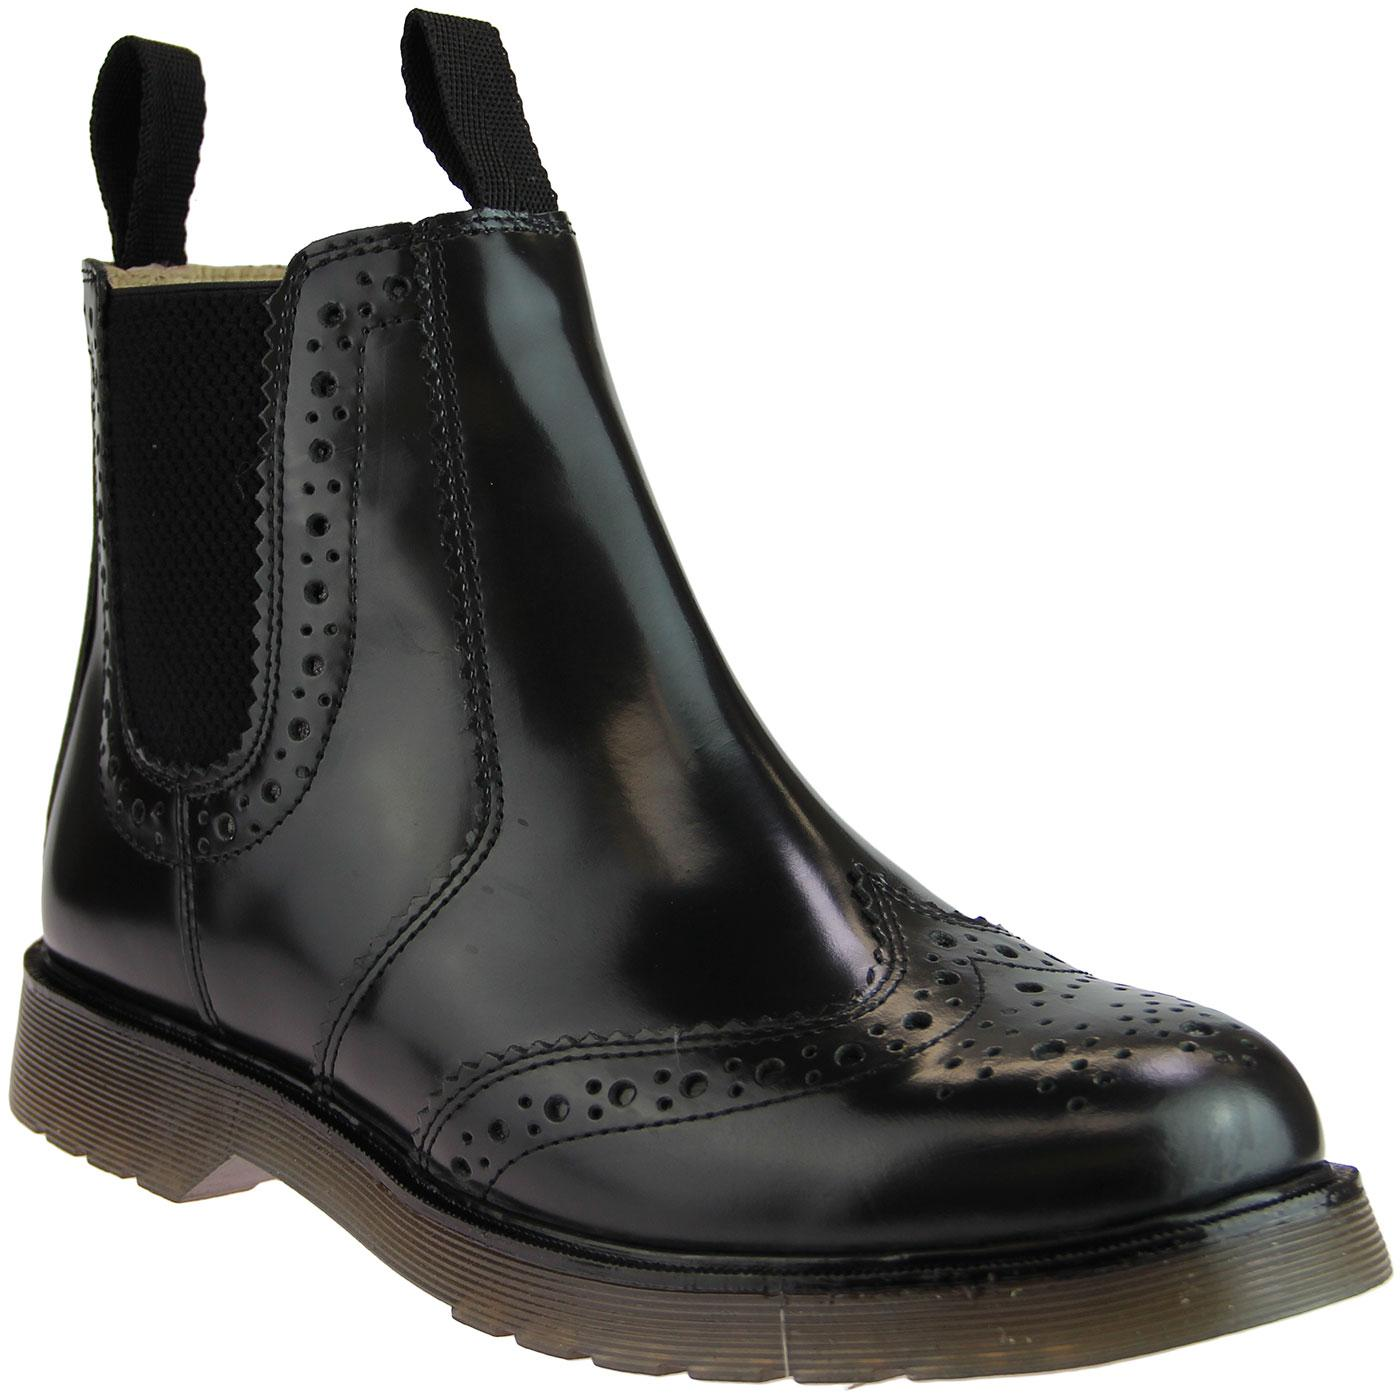 Men's Retro Mod Leather Brogue Chelsea Boots BLACK